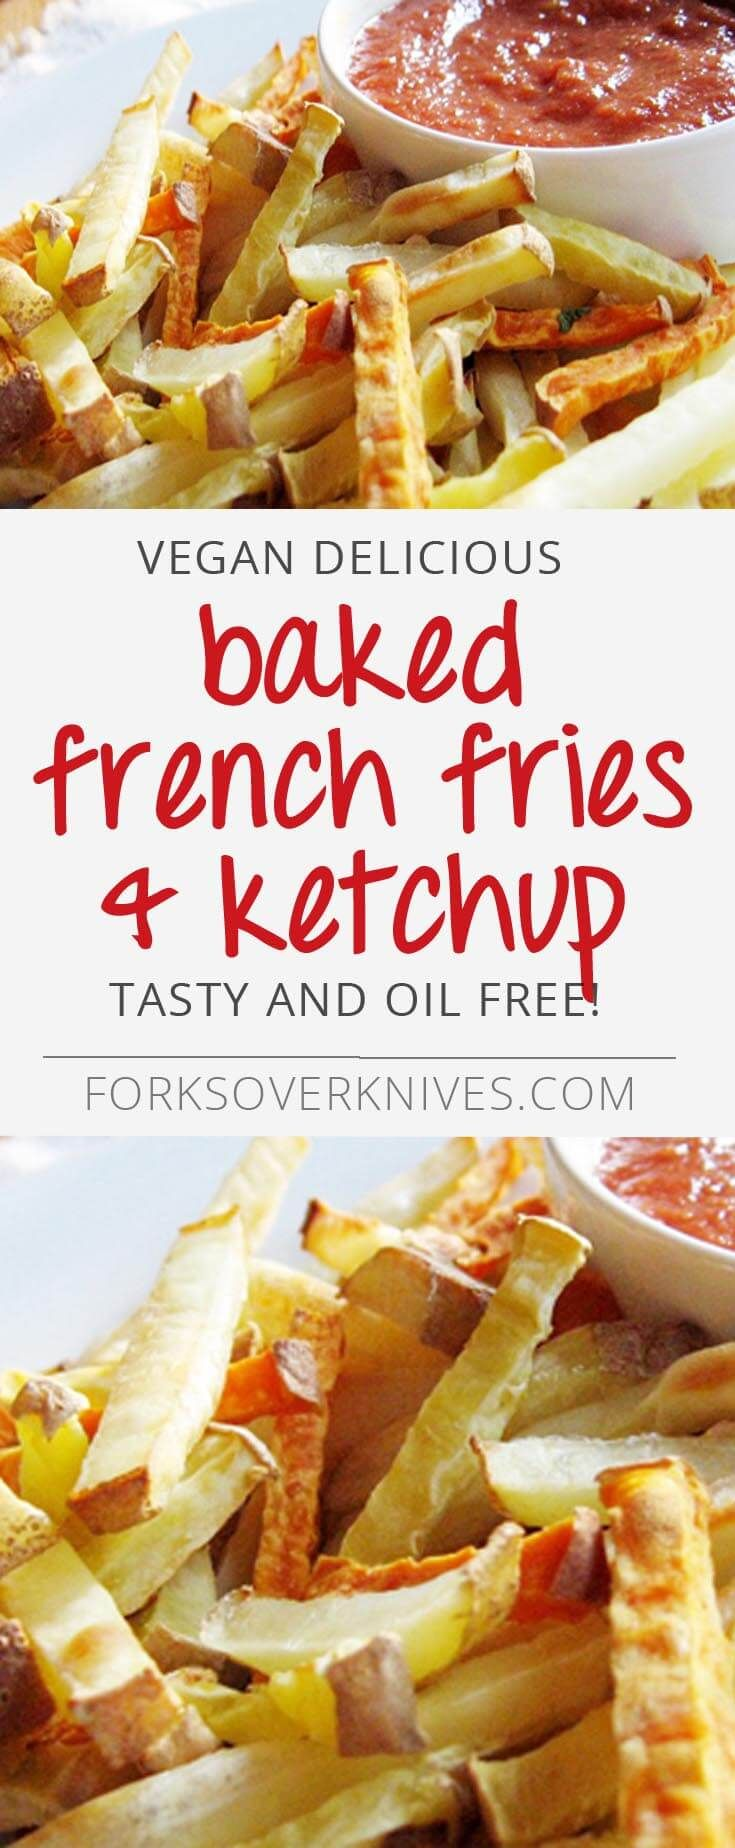 Try these baked, oil-free french-fries and ketchup which are a tasty delight!  The ketchup can also be used on veggie burgers or a potato scramble, and will keep for up to 10 days in the refrigerator. From straightupfood.com ­ Instructions:...  Read more